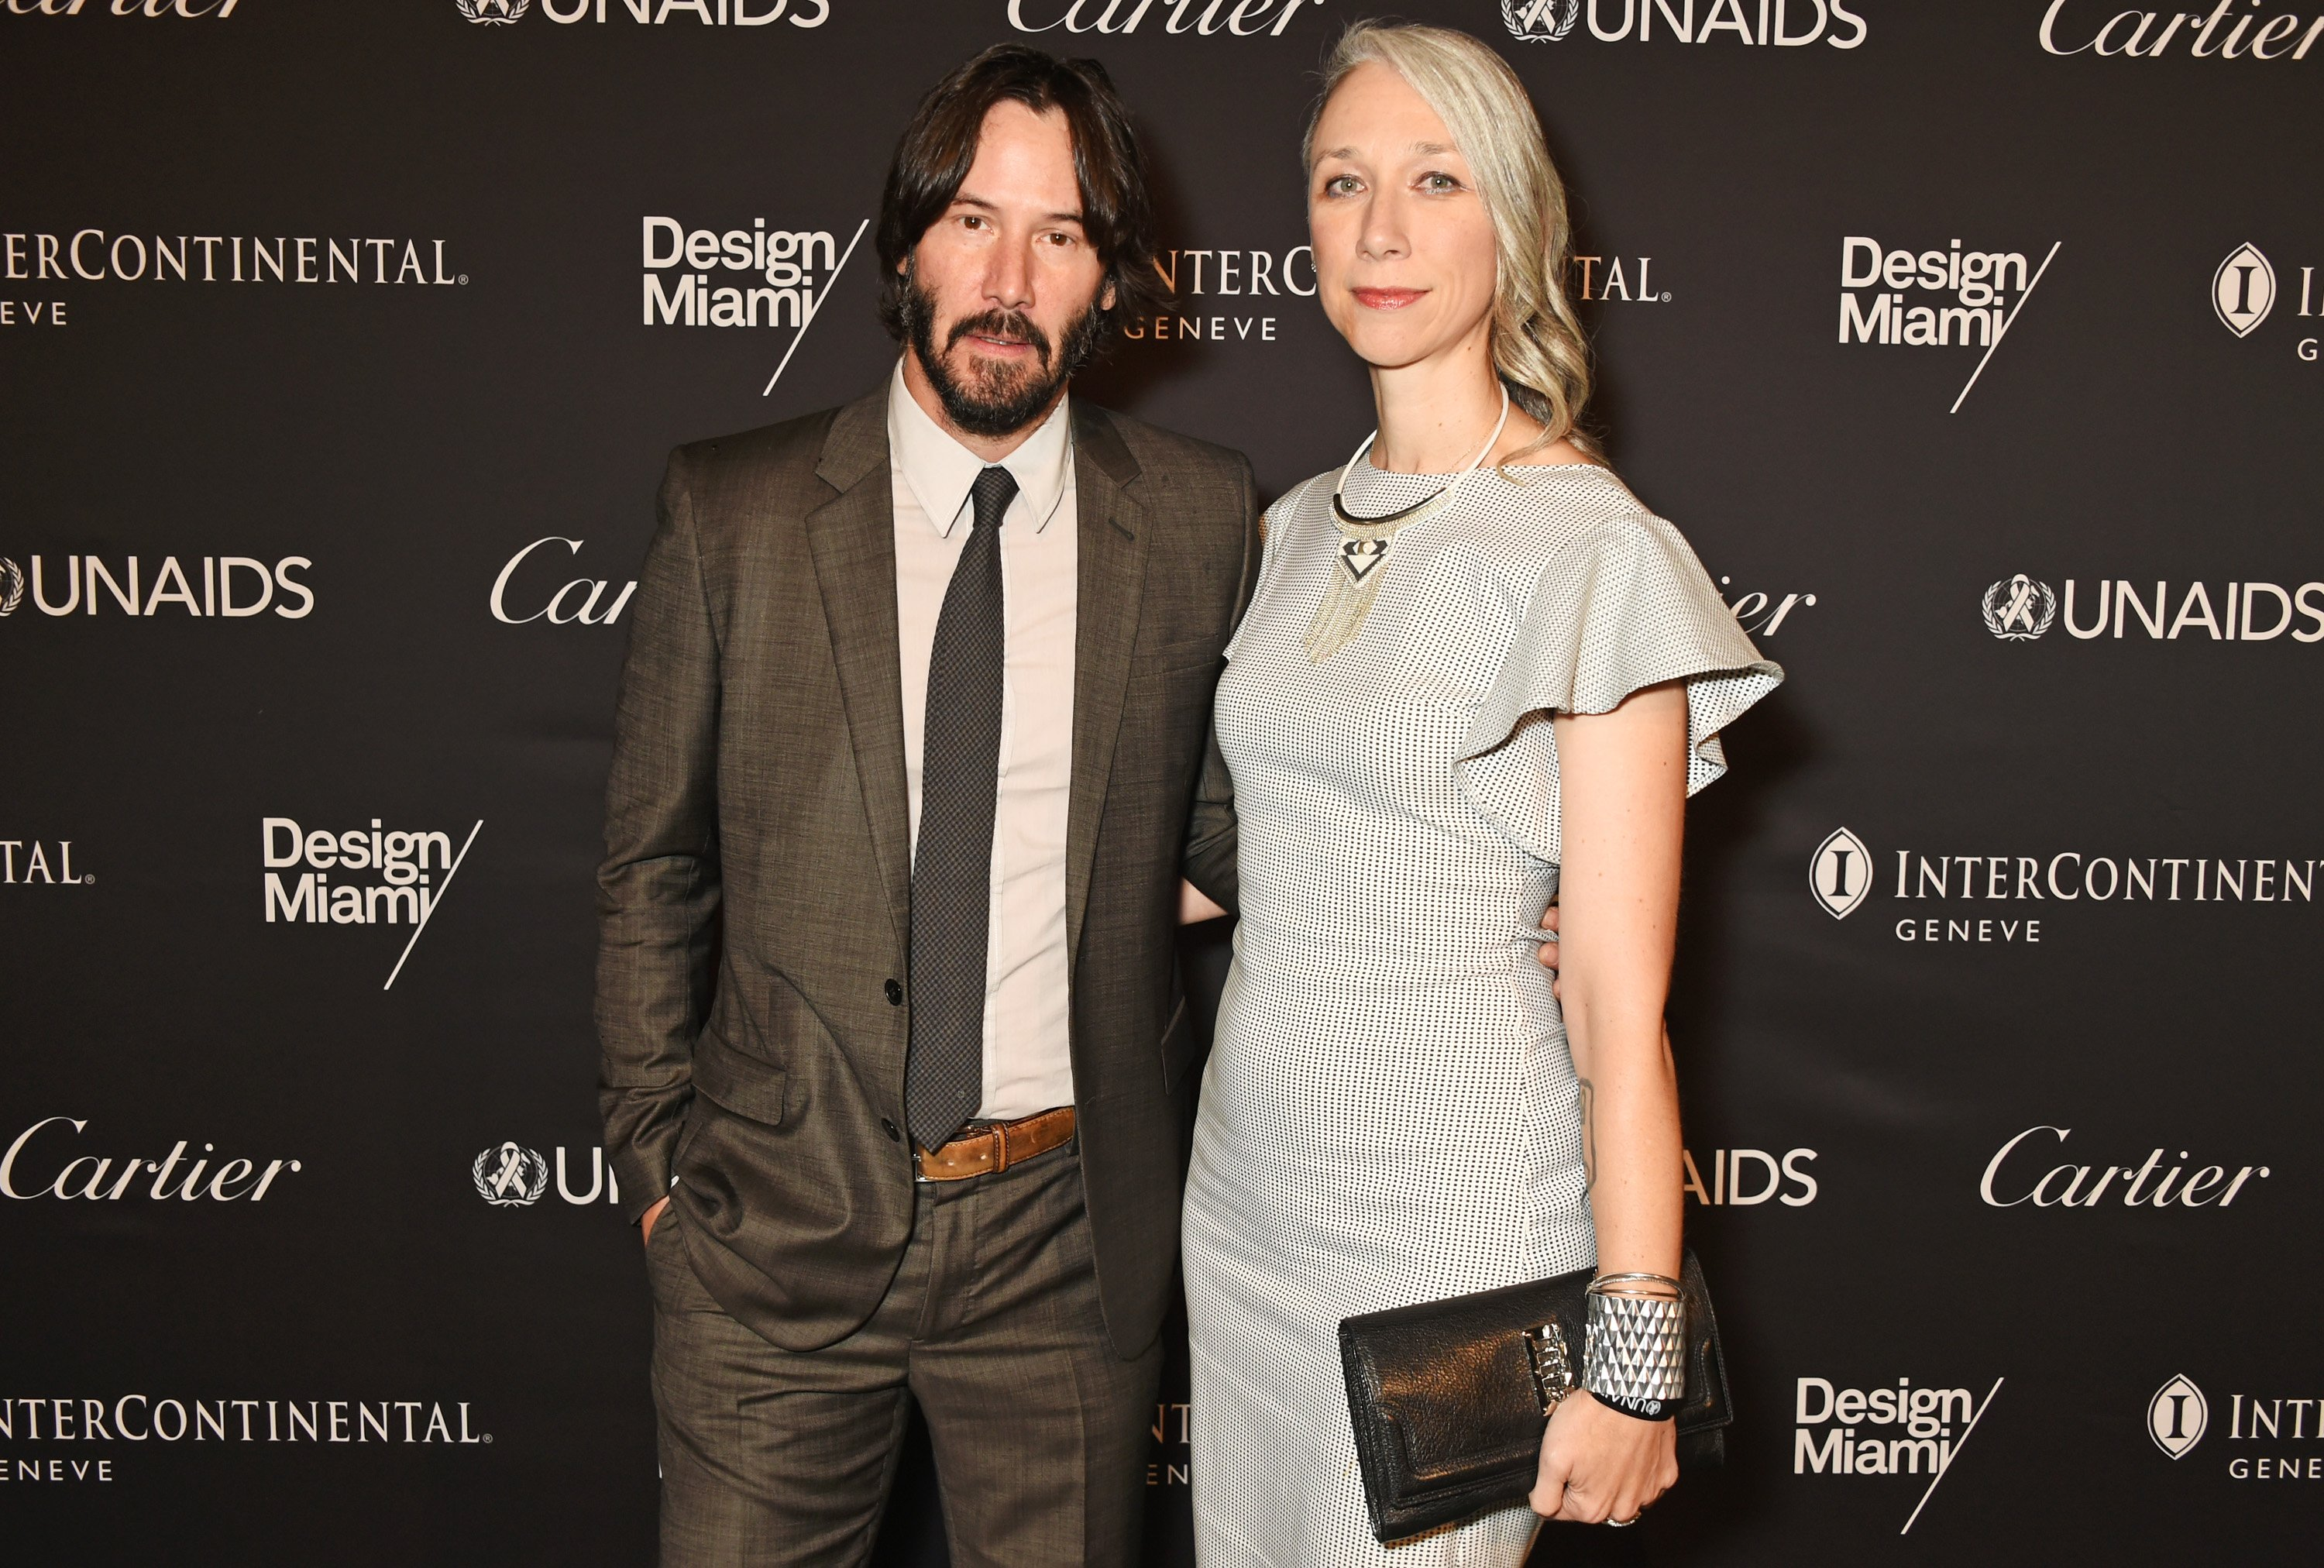 Keanu Reeves (L) and artist Alexandra Grant attend the UNAIDS Gala during Art Basel 2016 at Design Miami/ Basel on June 13, 2016, in Basel, Switzerland. | Source: Getty Images.